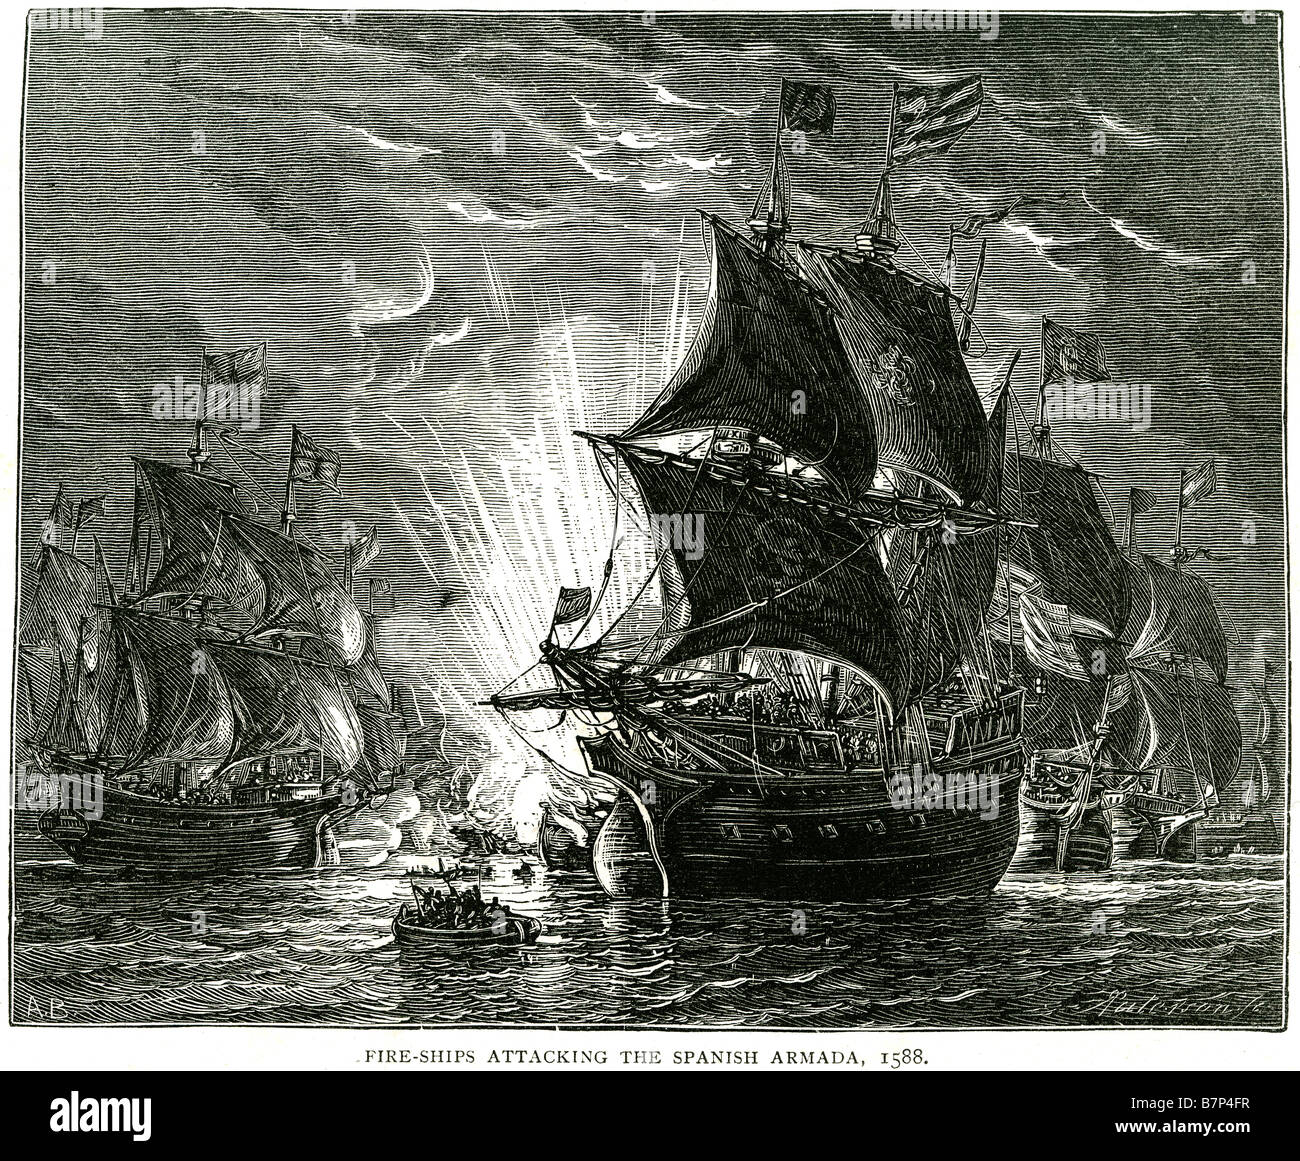 fire ships attacking spanish armada 1588 Battle ship Fleet sea Water  Sailing Sail cannon guns blast flags deck mast The Spanish